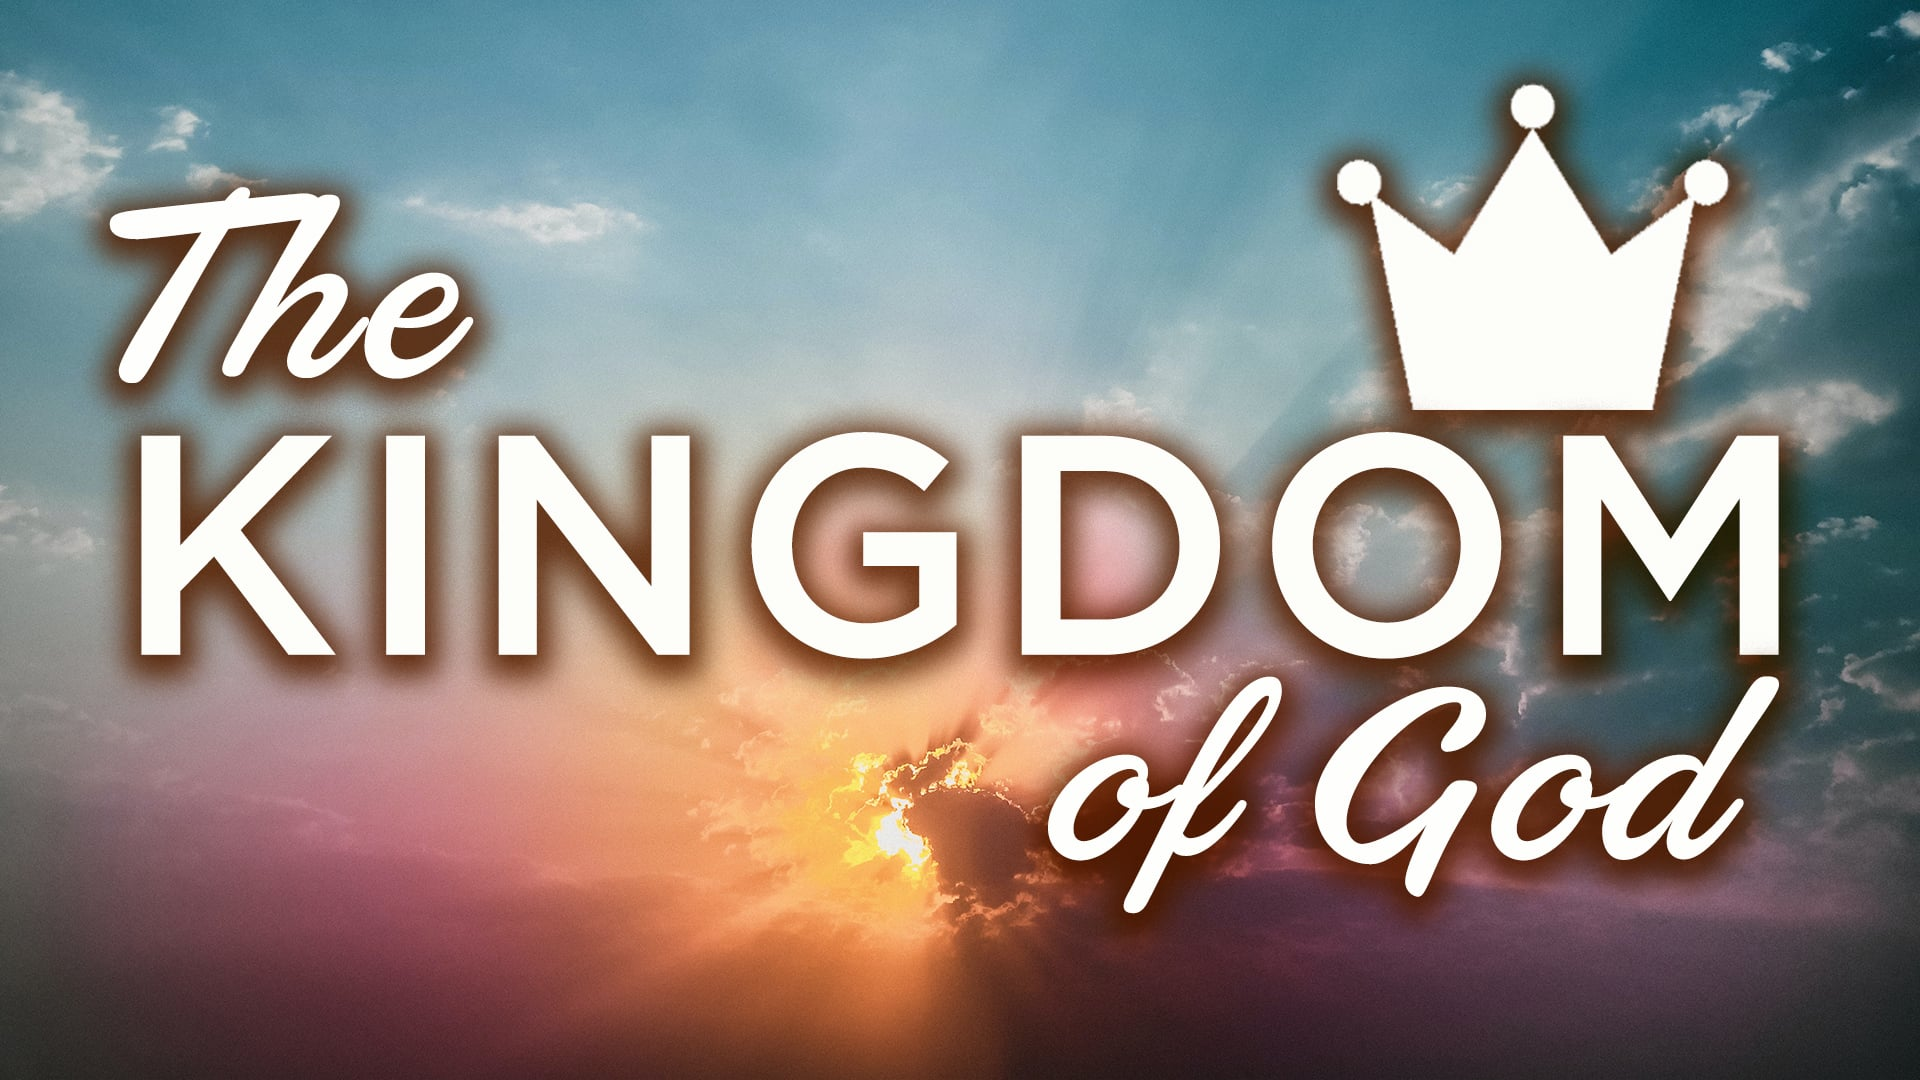 The Impossible Kingdom